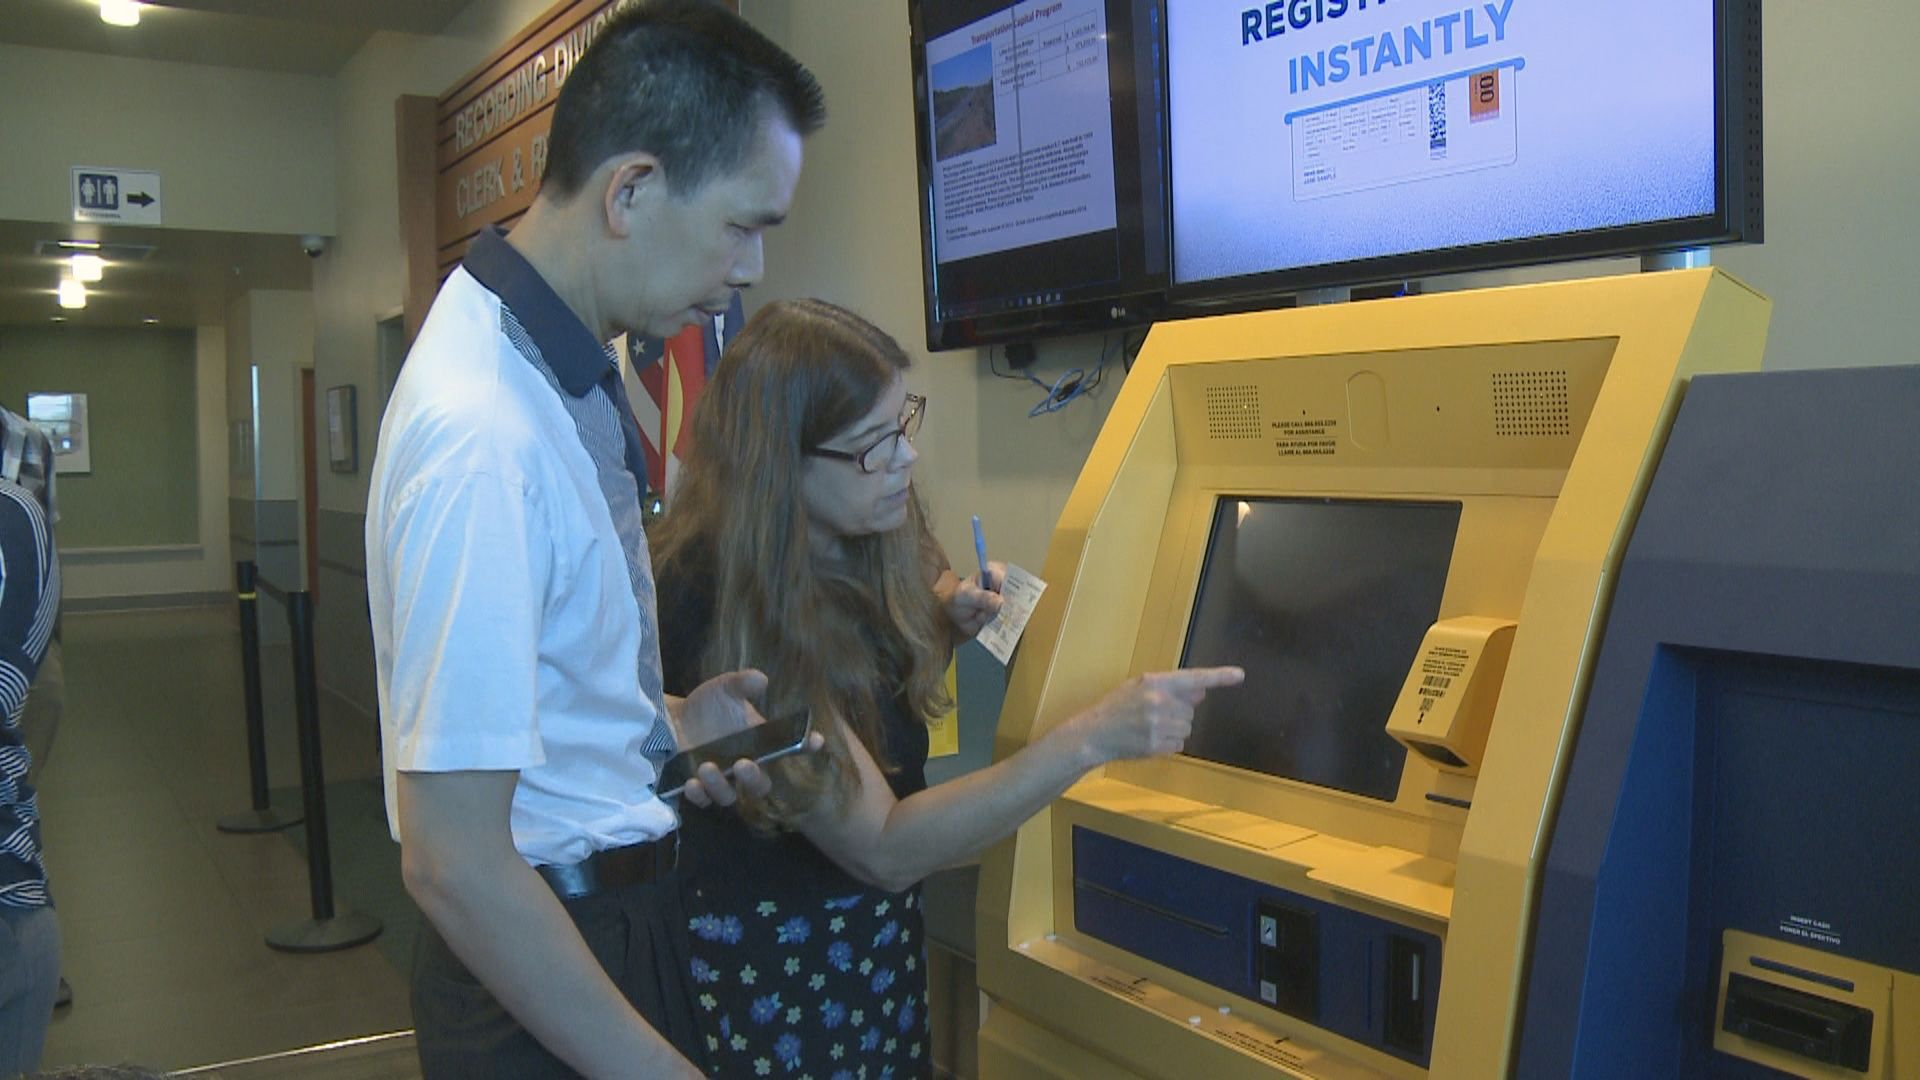 New selfservice kiosk at DMV aims to reduce wait times